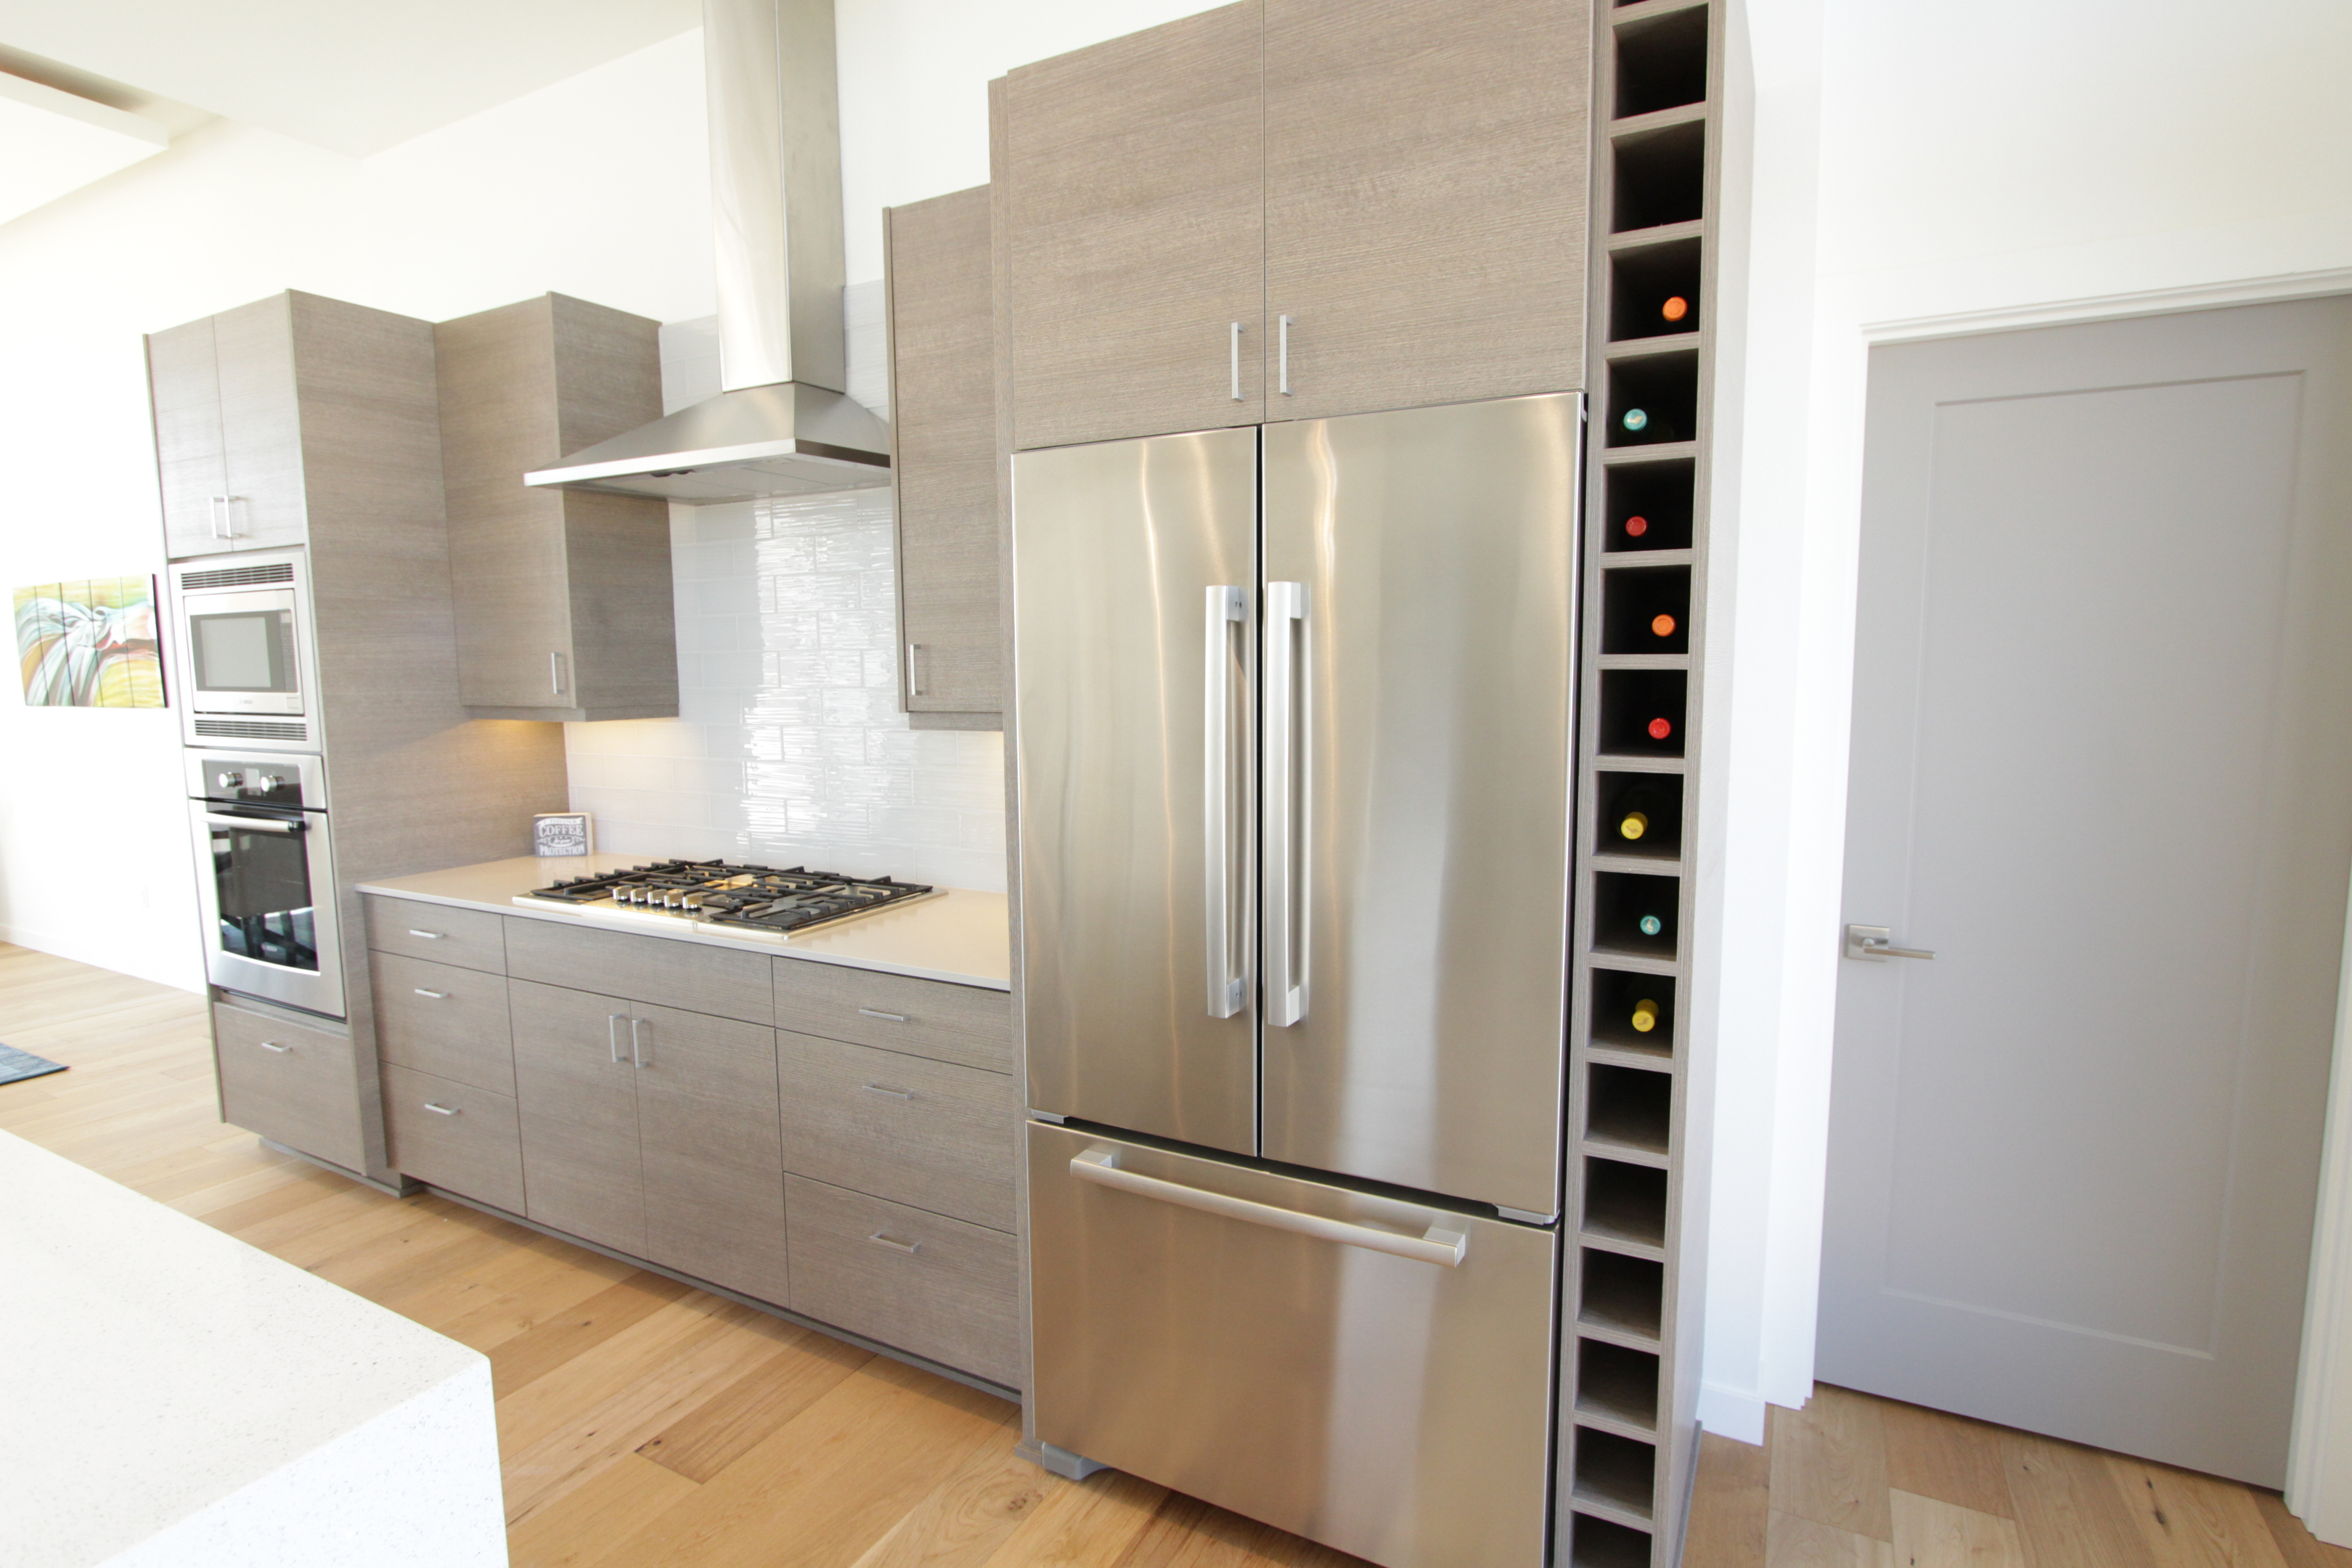 Thumb Kitchen Contemporary Style Custom Laminate Grey Banded Door Cubbie  Wine Rack Frameless Construction Chimney Hood